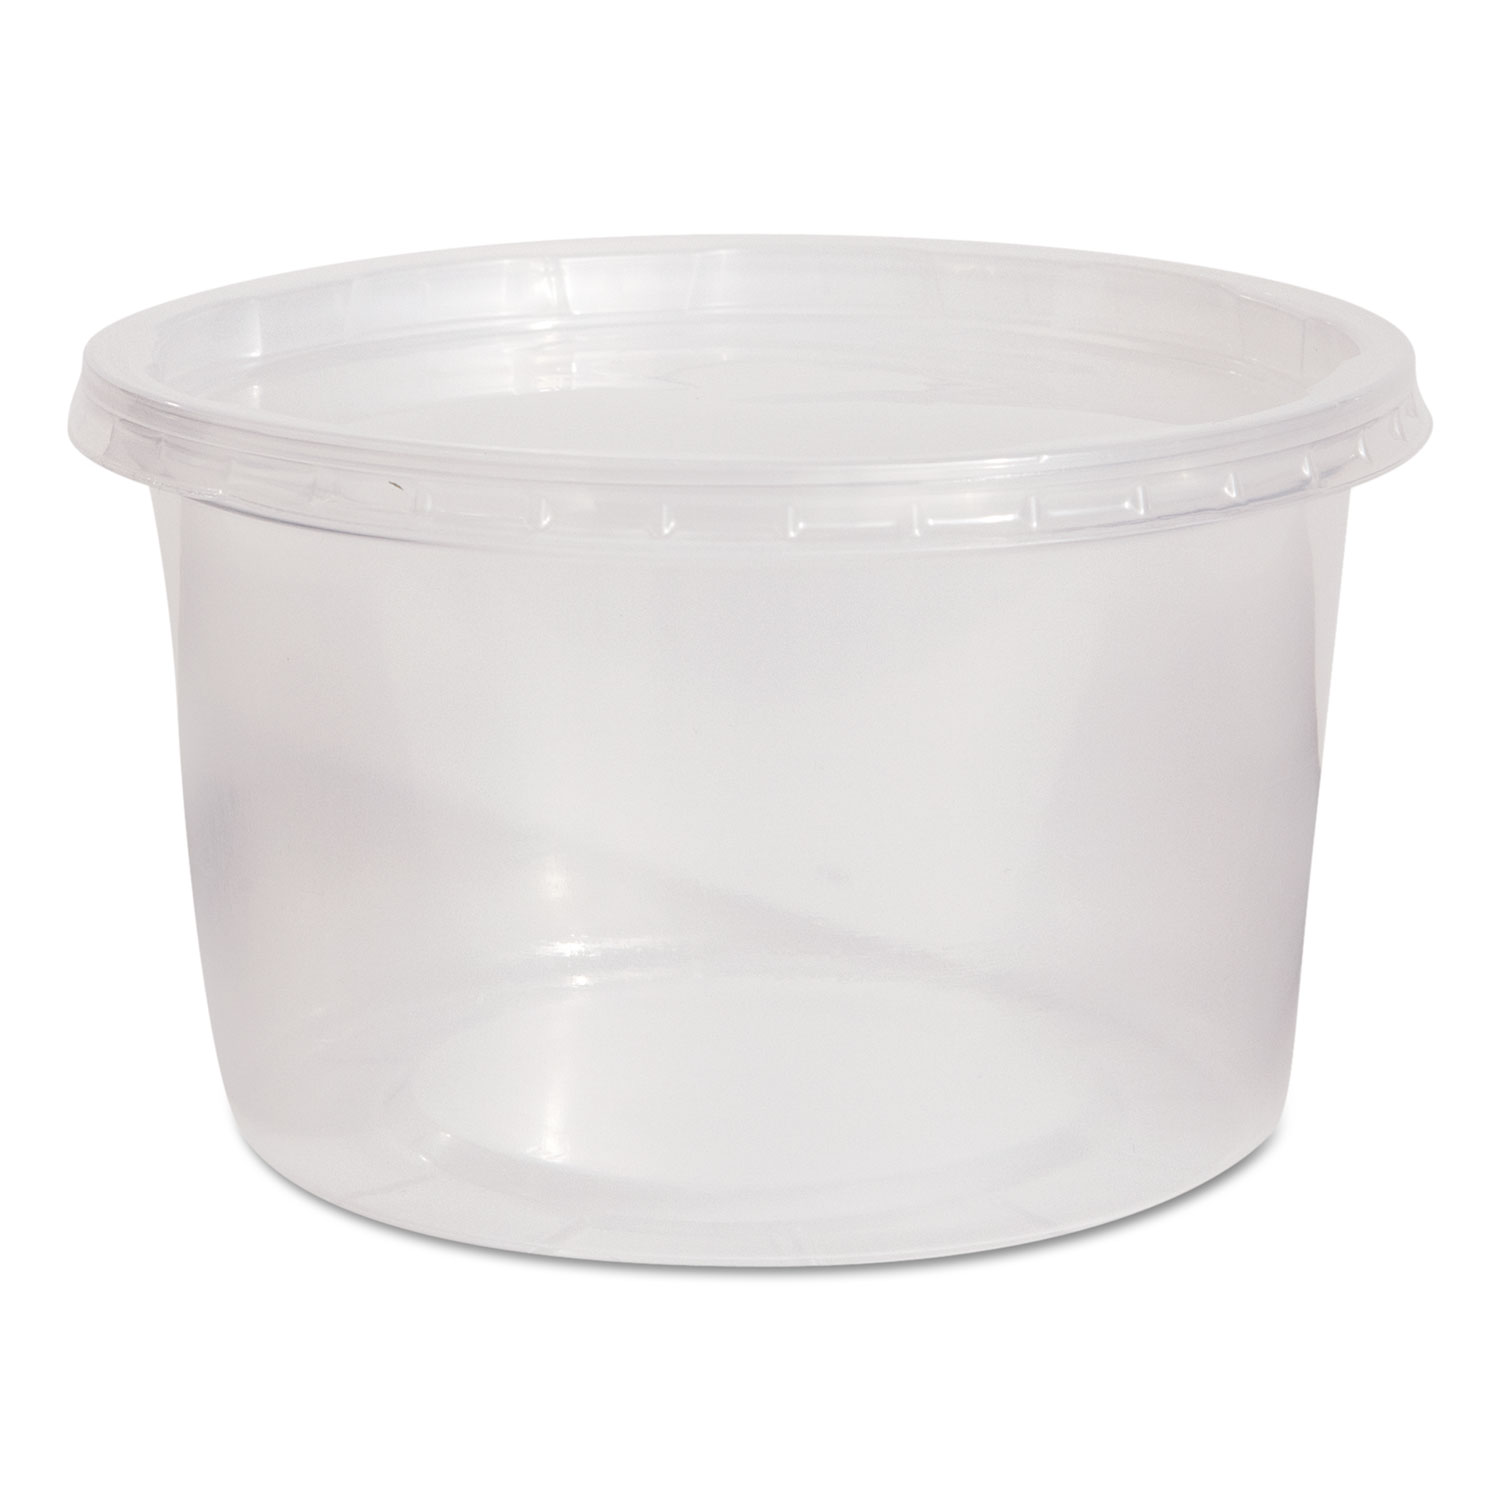 CONTAINER,W/LID,16OZ,CLR